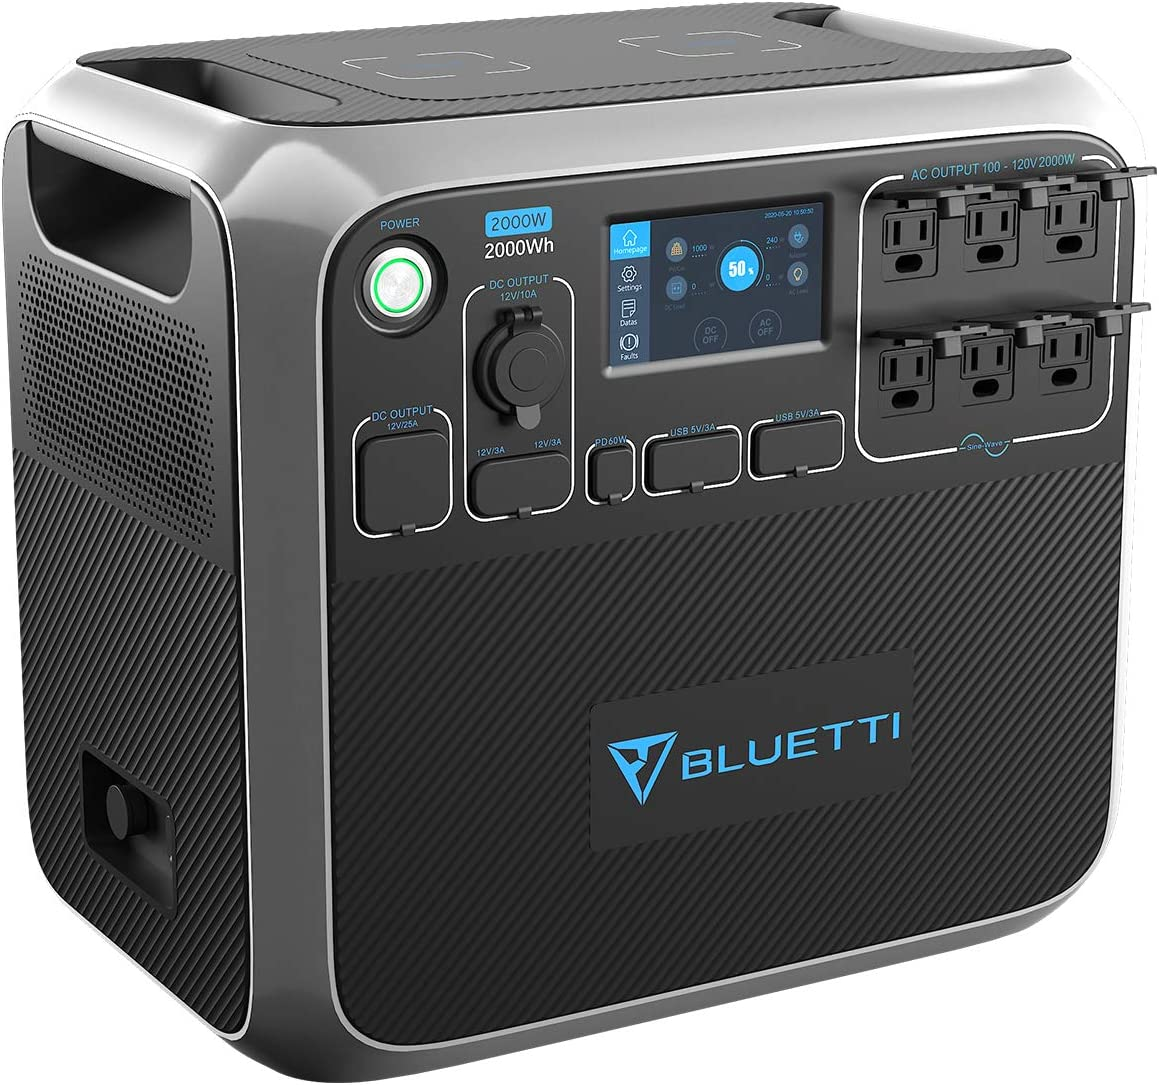 BLUETTI Portable Power Station AC200P 2000W 2000Wh Solar Generator 700W Max Solar Input Backup Battery Pack with 6 2000W AC Outlet(4800W Peak) for Van Home Emergency Outdoor Camping Explore